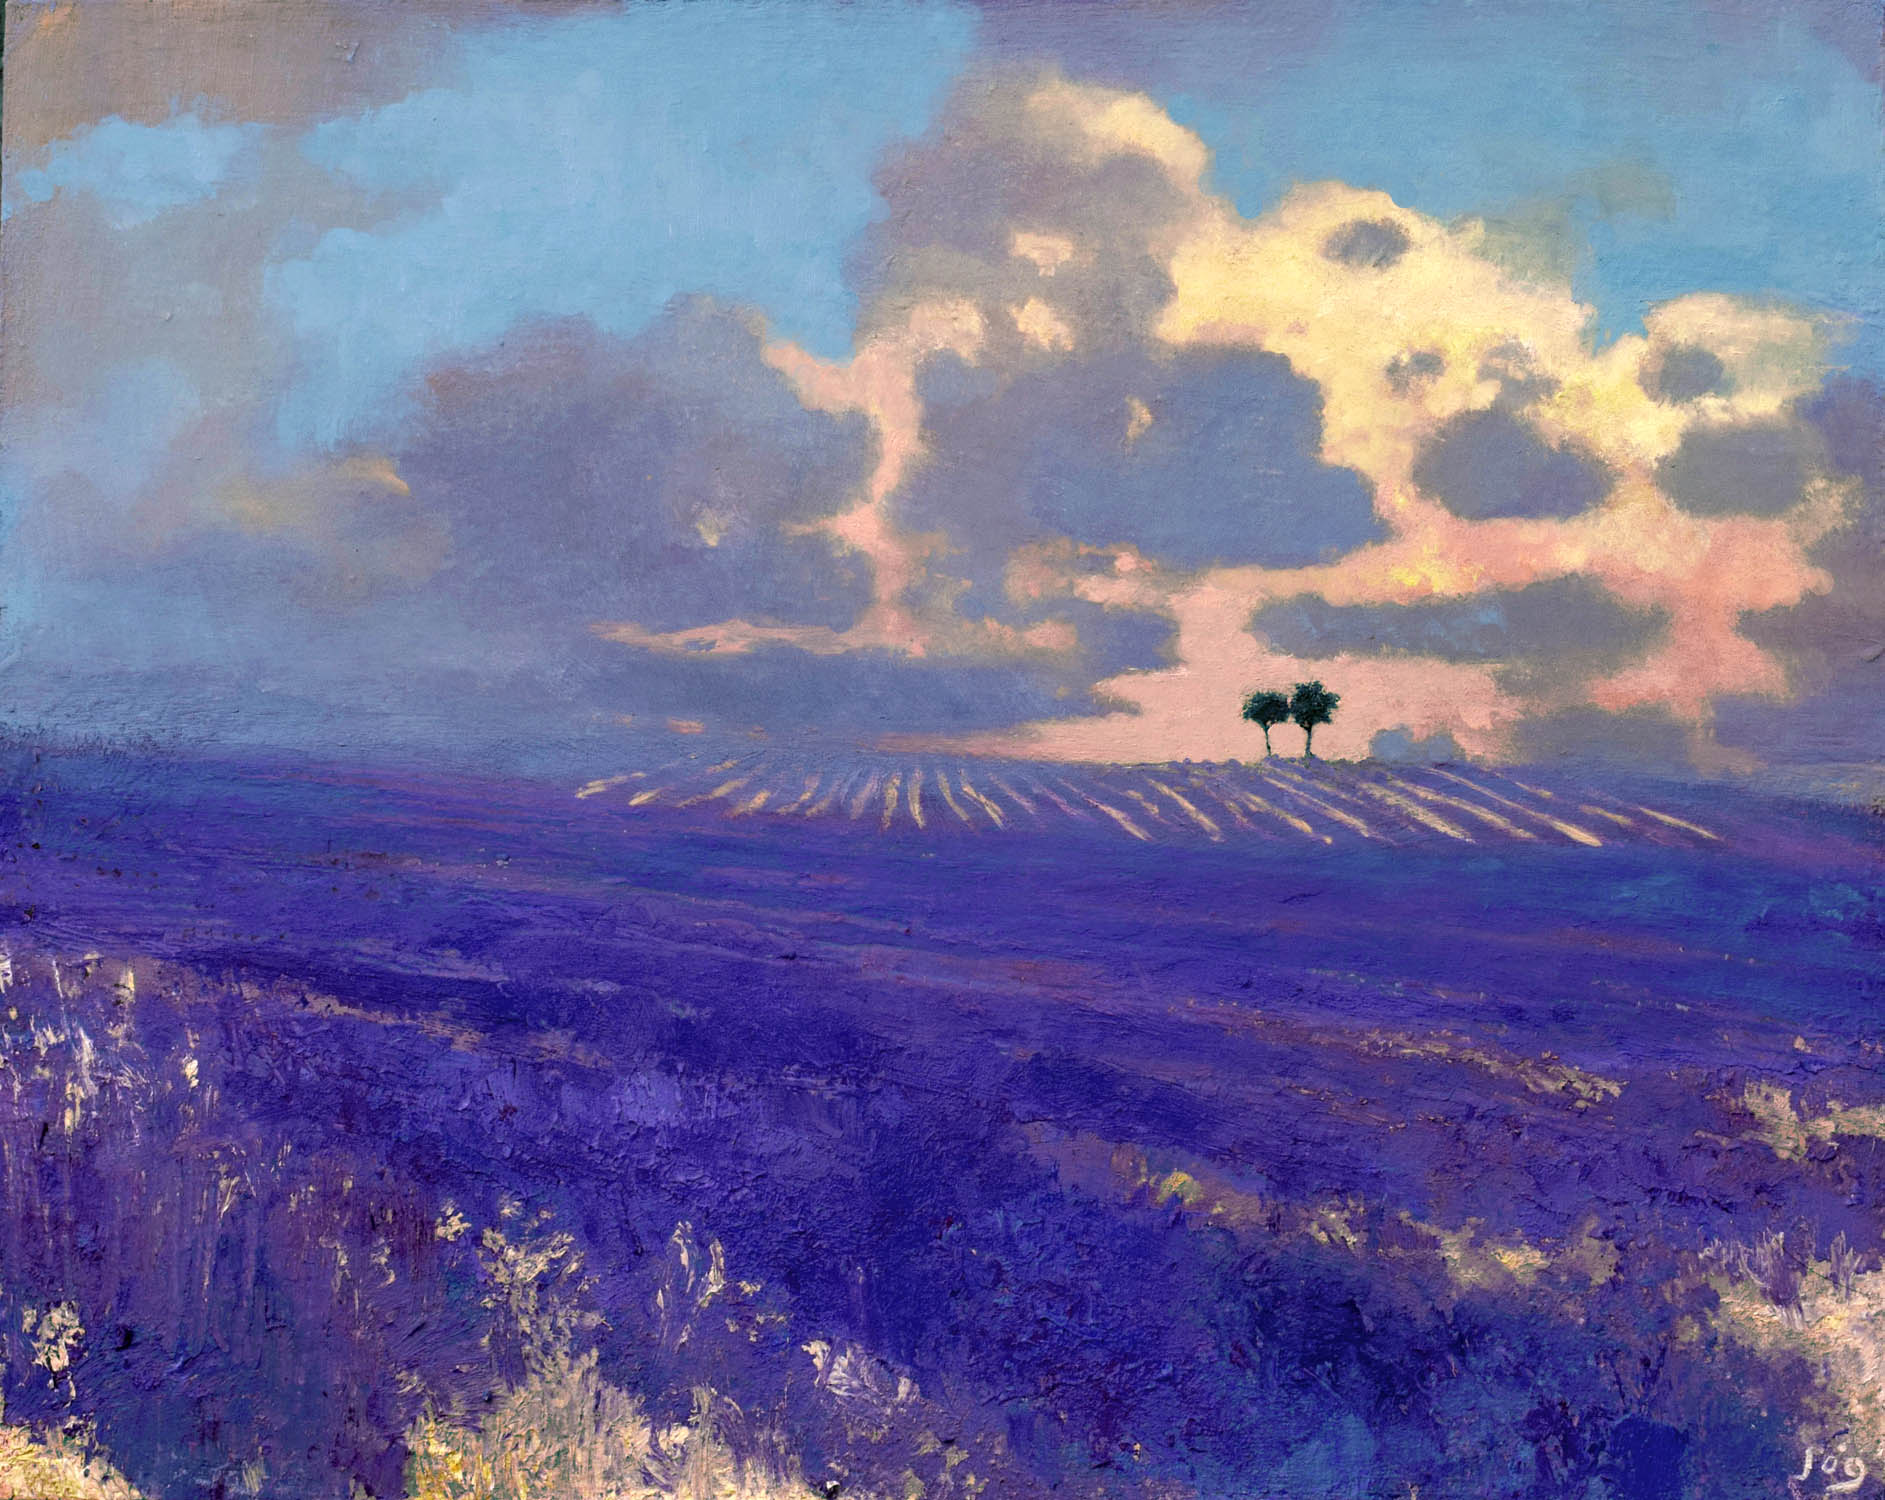 Falling Light in Ferrassières by John O'Grady | An oil painting with lavender fields at sunset in Provence